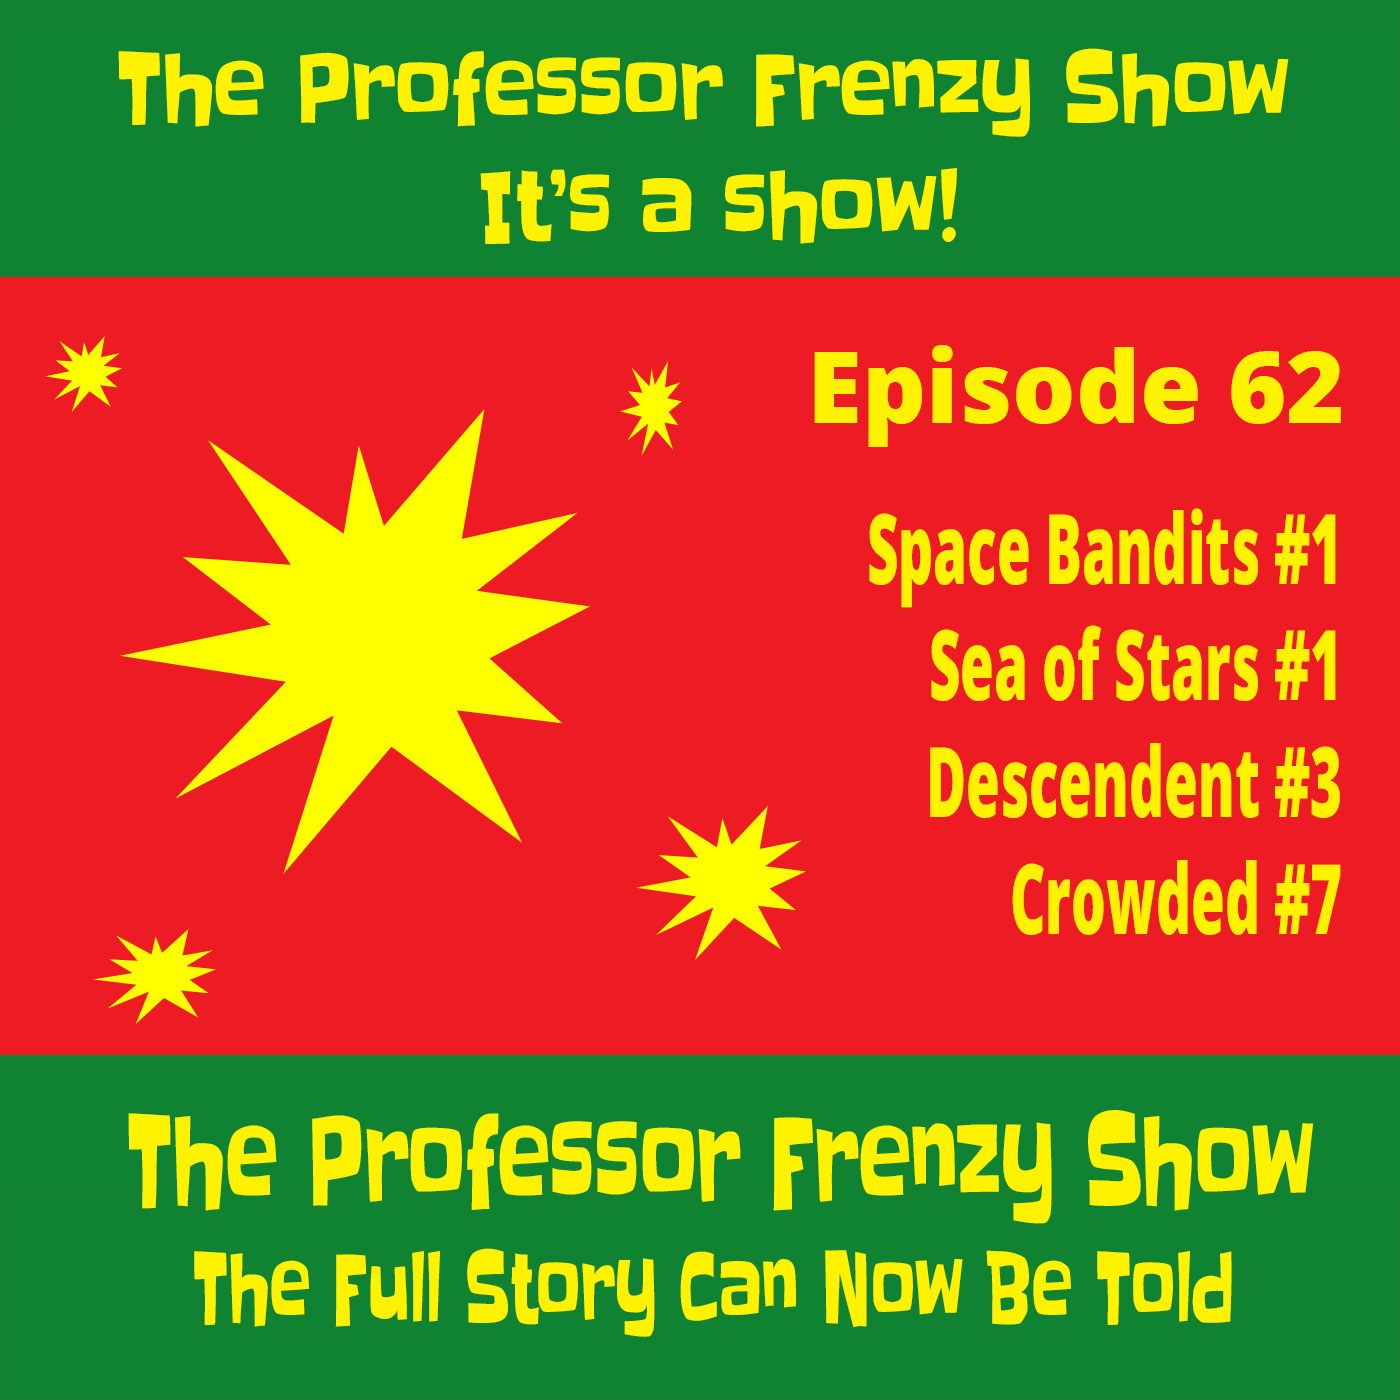 Artwork for The Professor Frenzy Show Episode 62